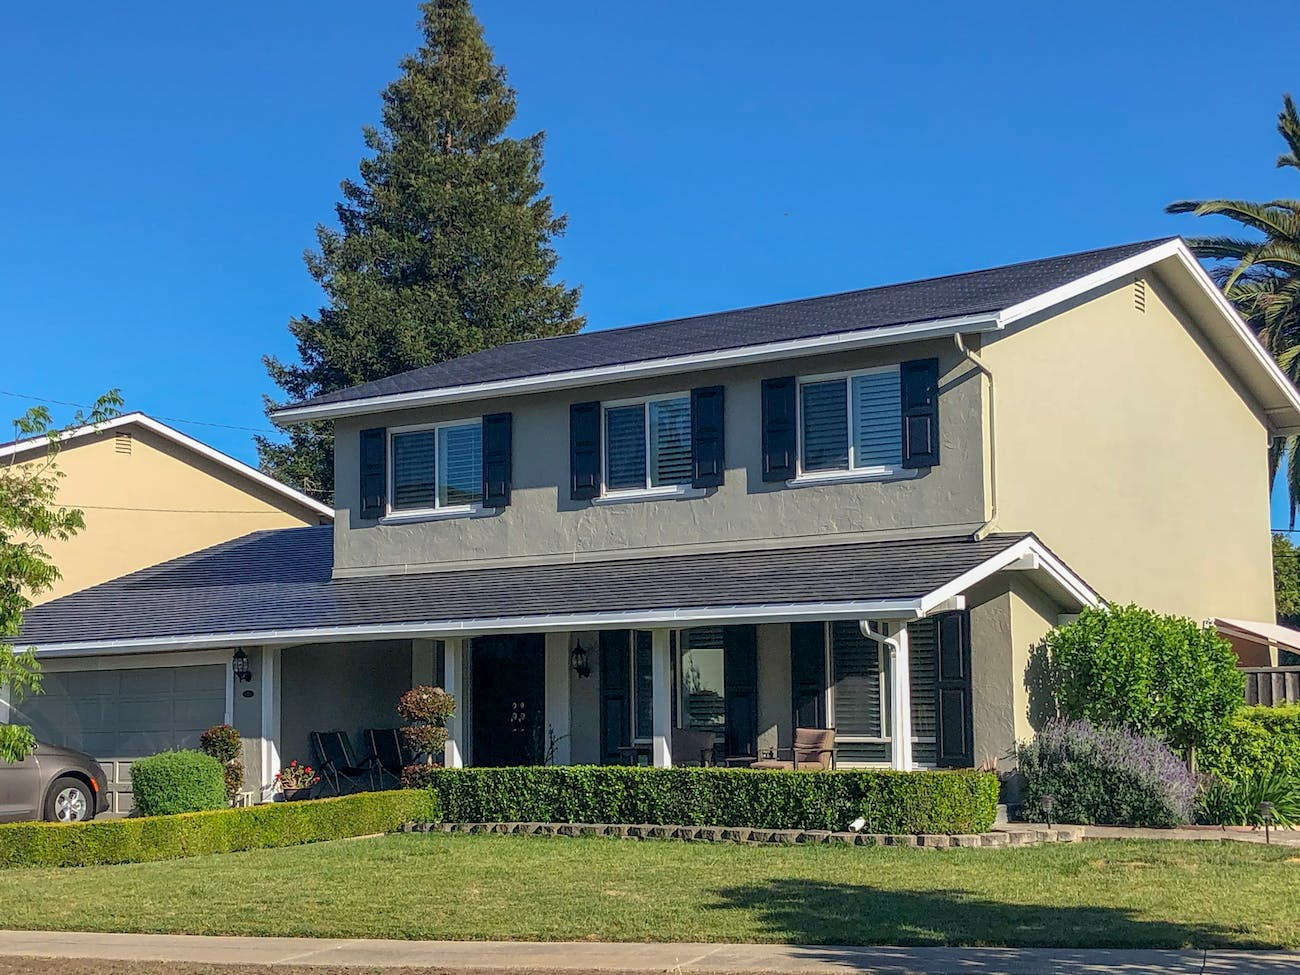 Amanda Tobler's house in California with a Tesla Solar Roof.